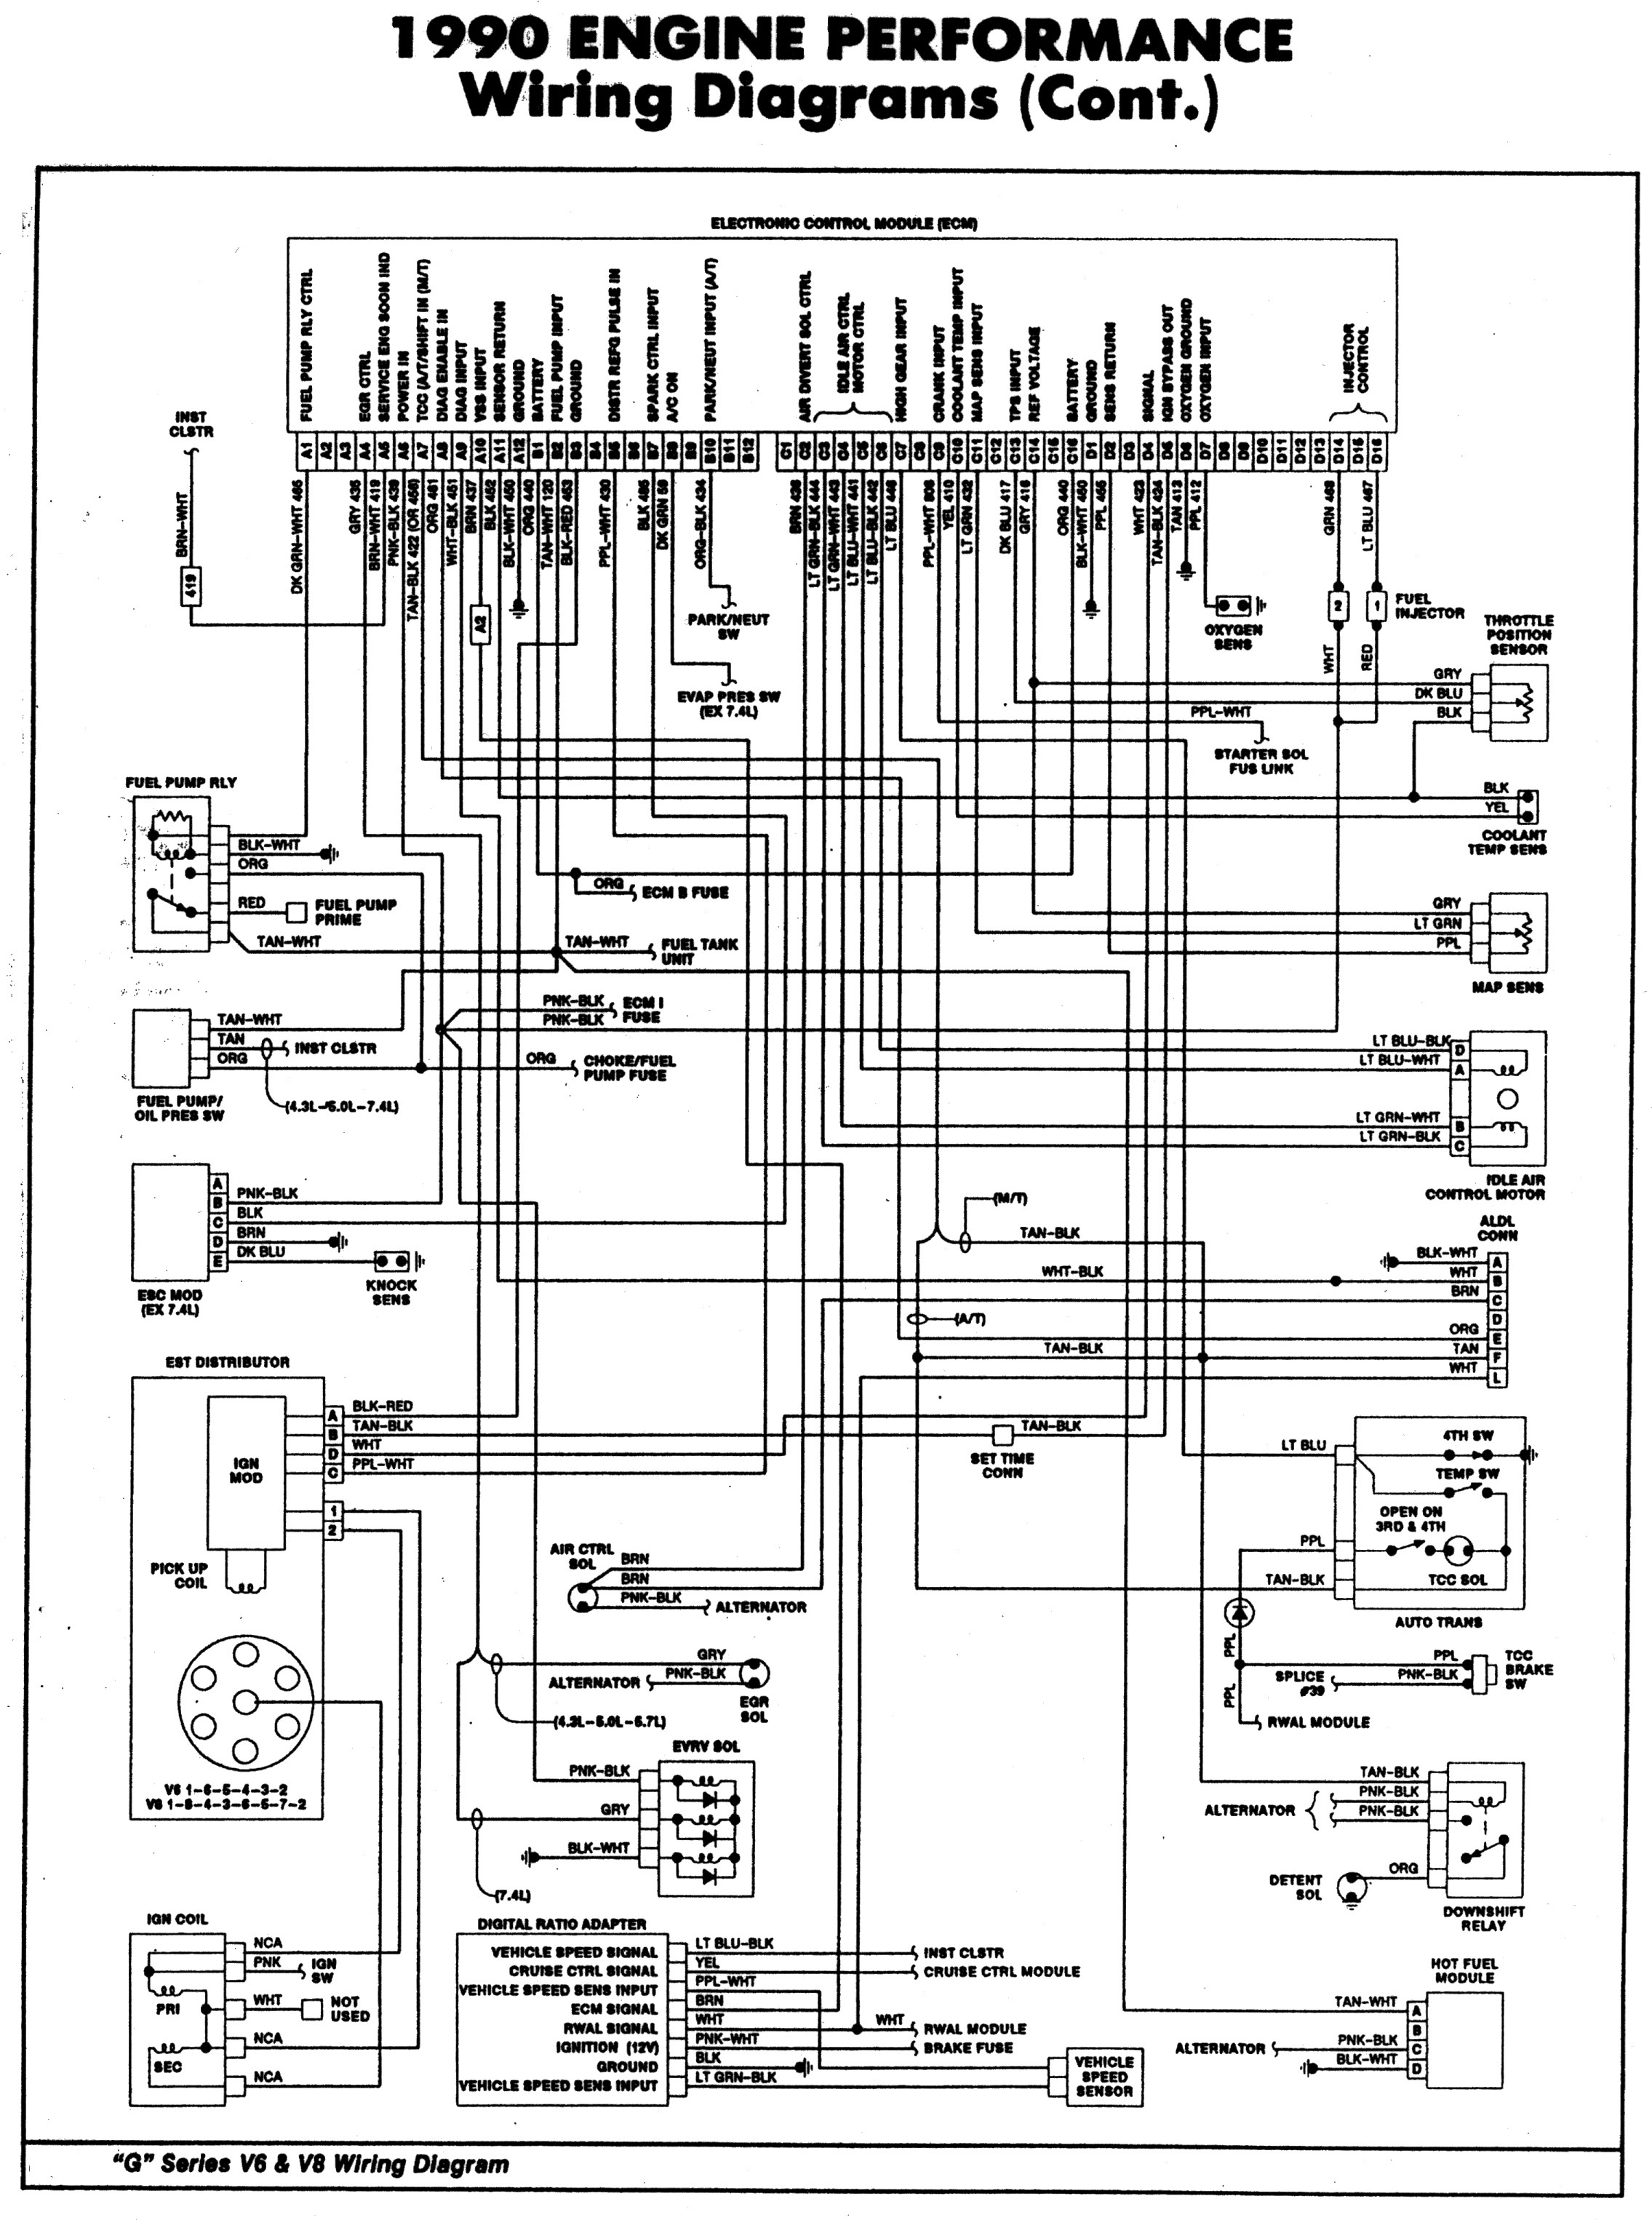 small resolution of ignitiondiagram 1990 chevy suburban tbi 350 installation land rh pinterest com 1990 gmc suburban wiring diagram 1990 chevy suburban wiring diagram